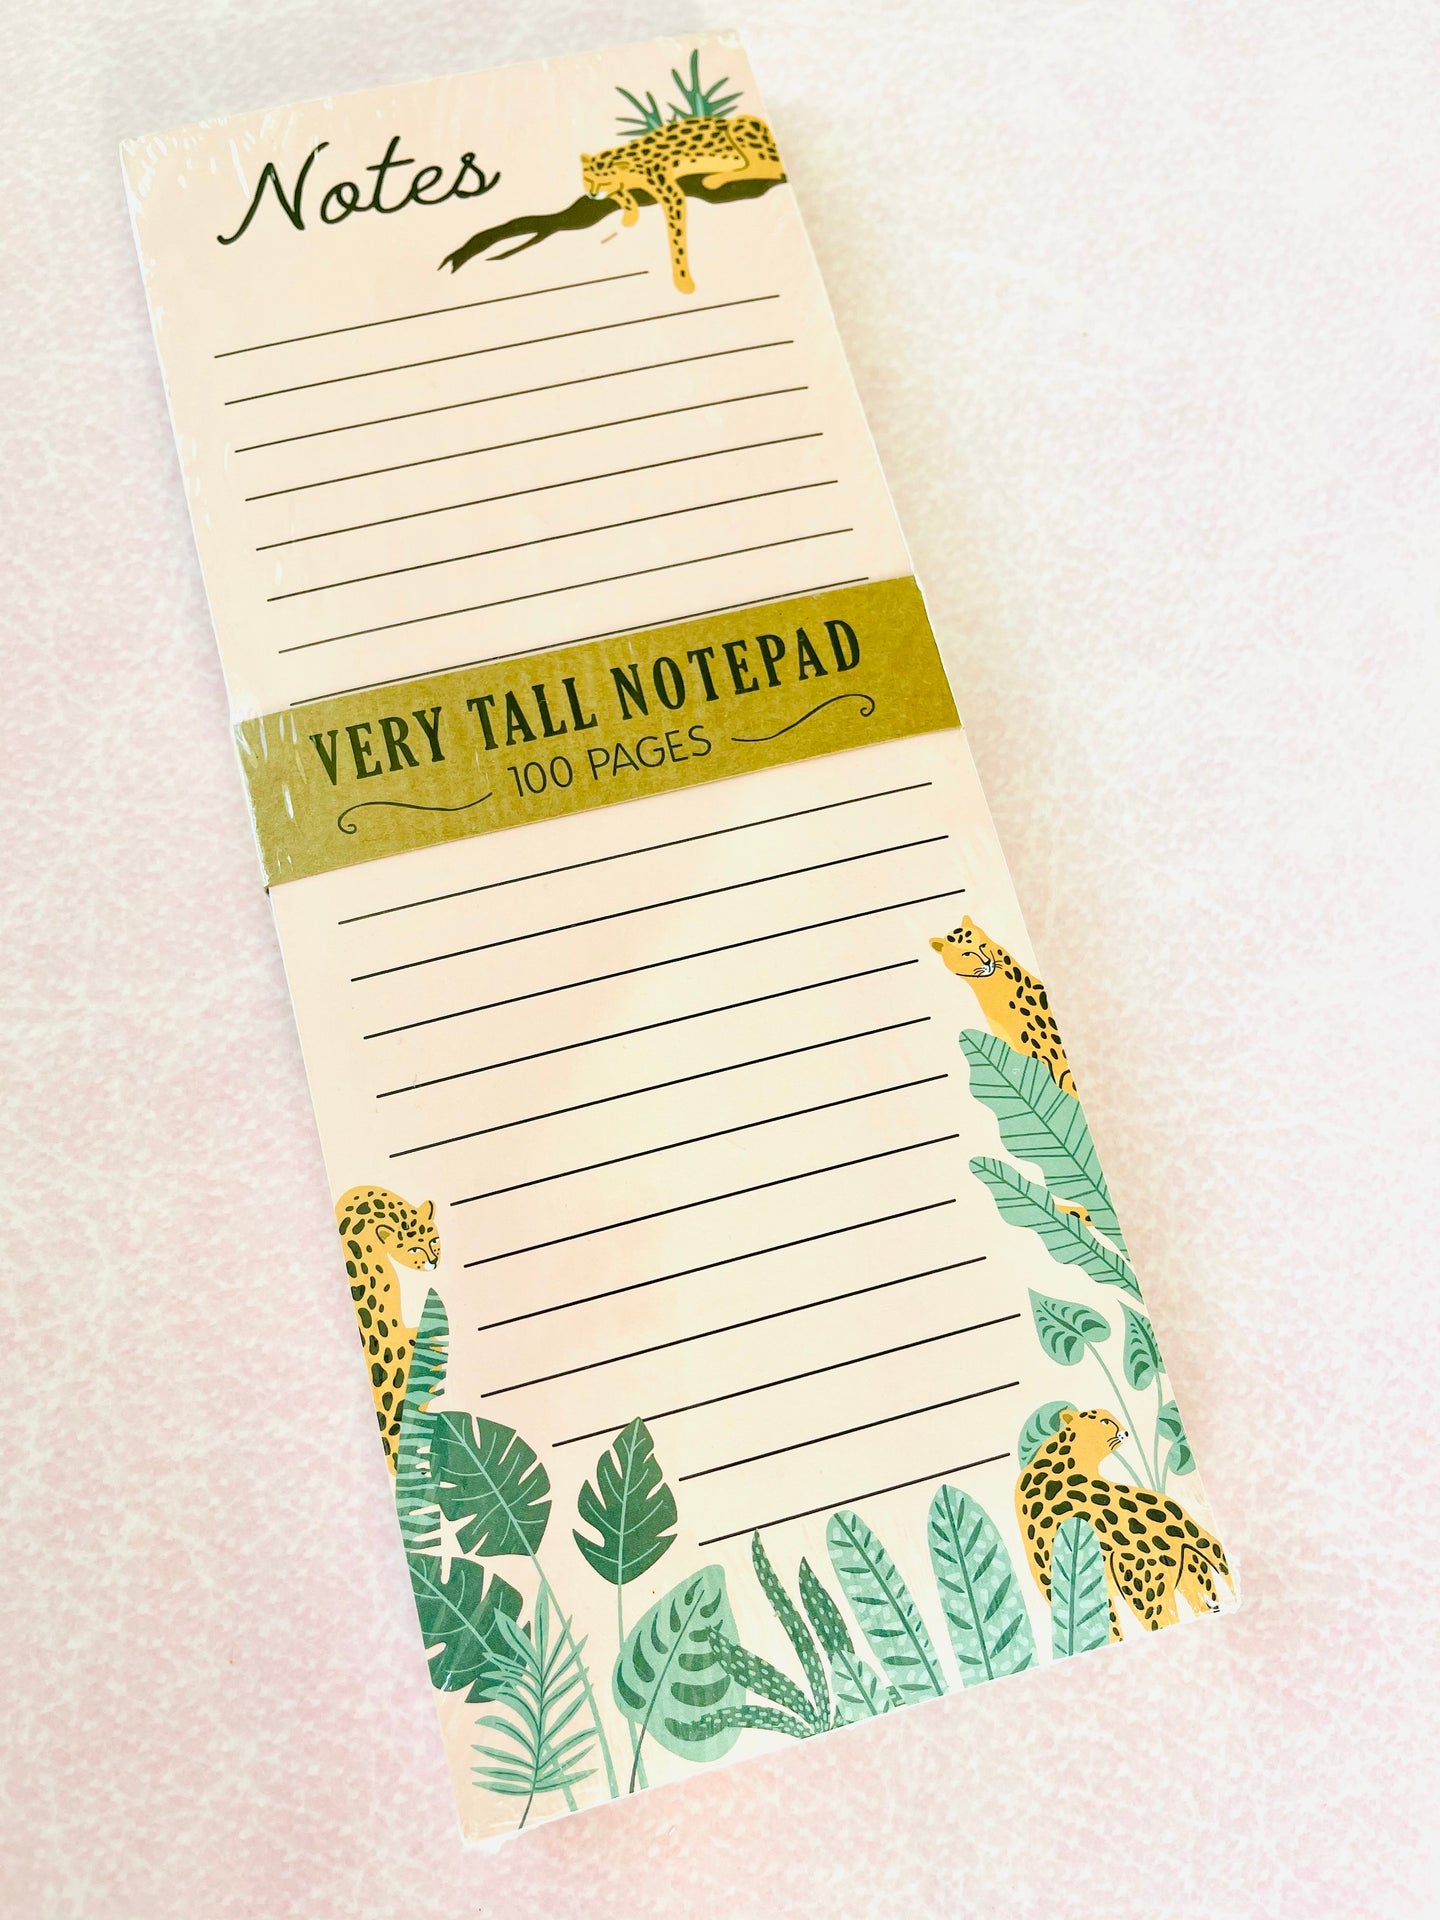 Cheetah Tall Notepad - The Dallas Gordon Collection